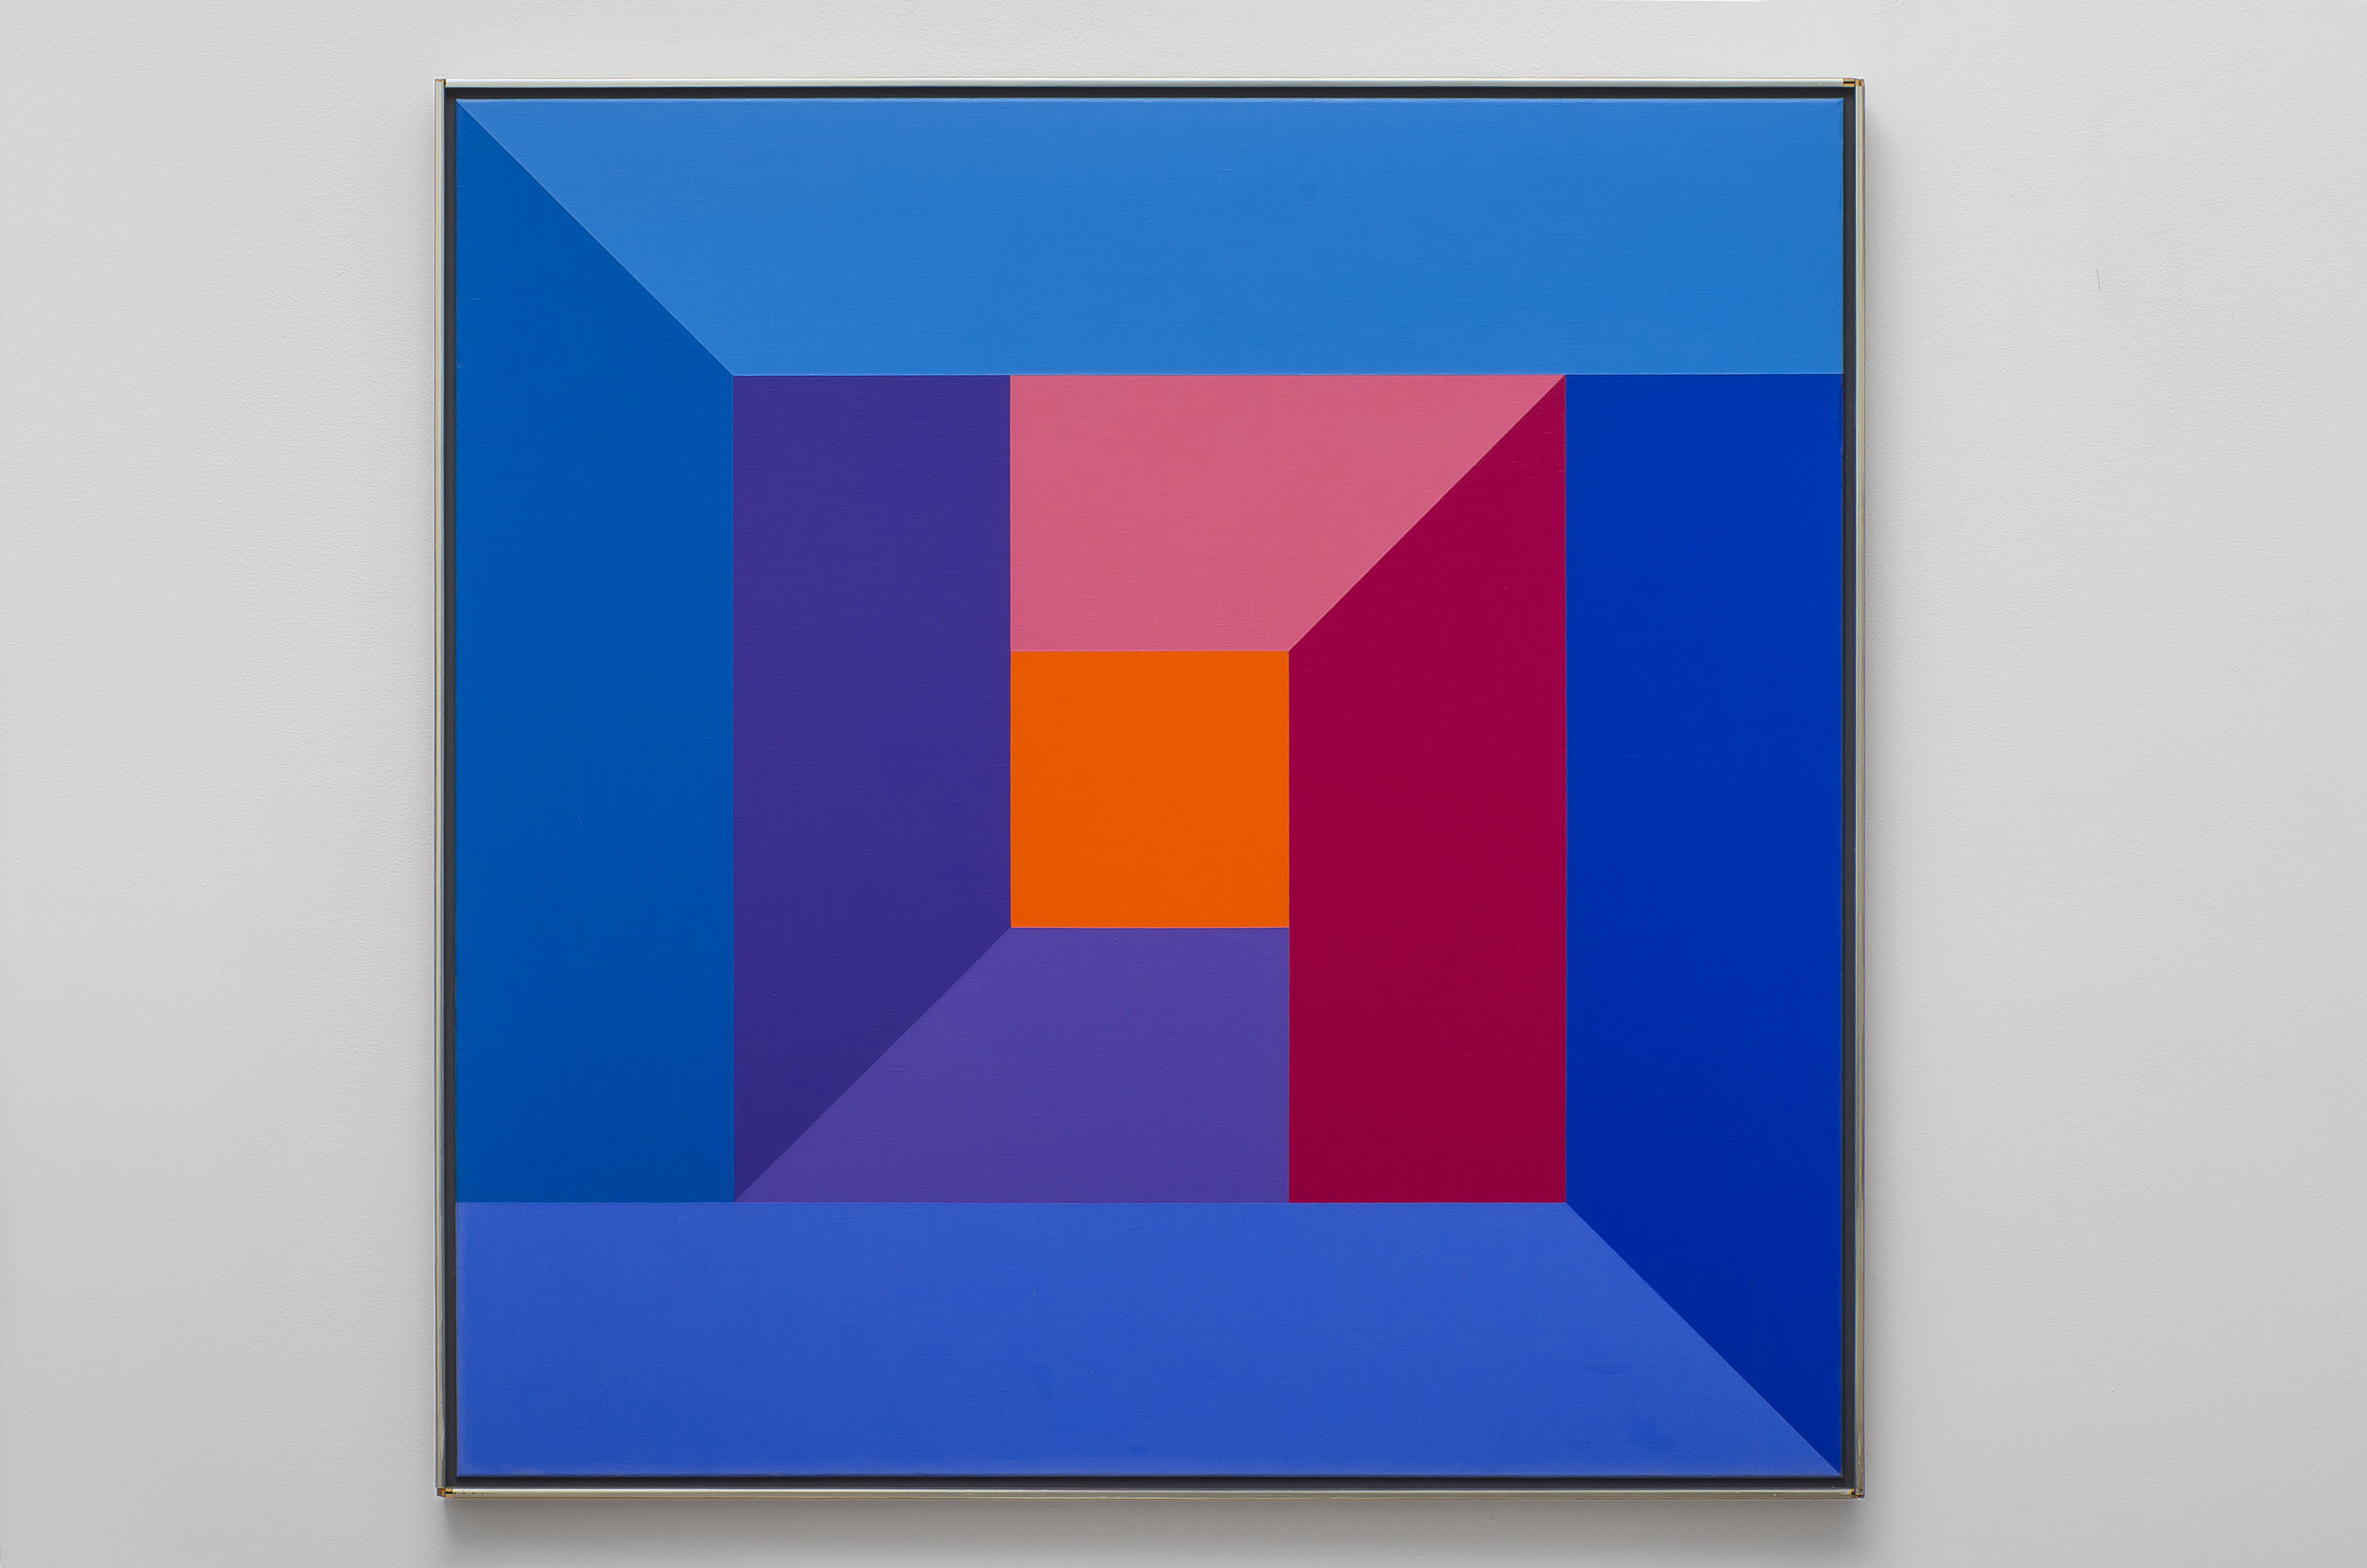 #7 , 1974  oil on canvas 40 x 40 inches; 101.6 x 101.6 centimeters